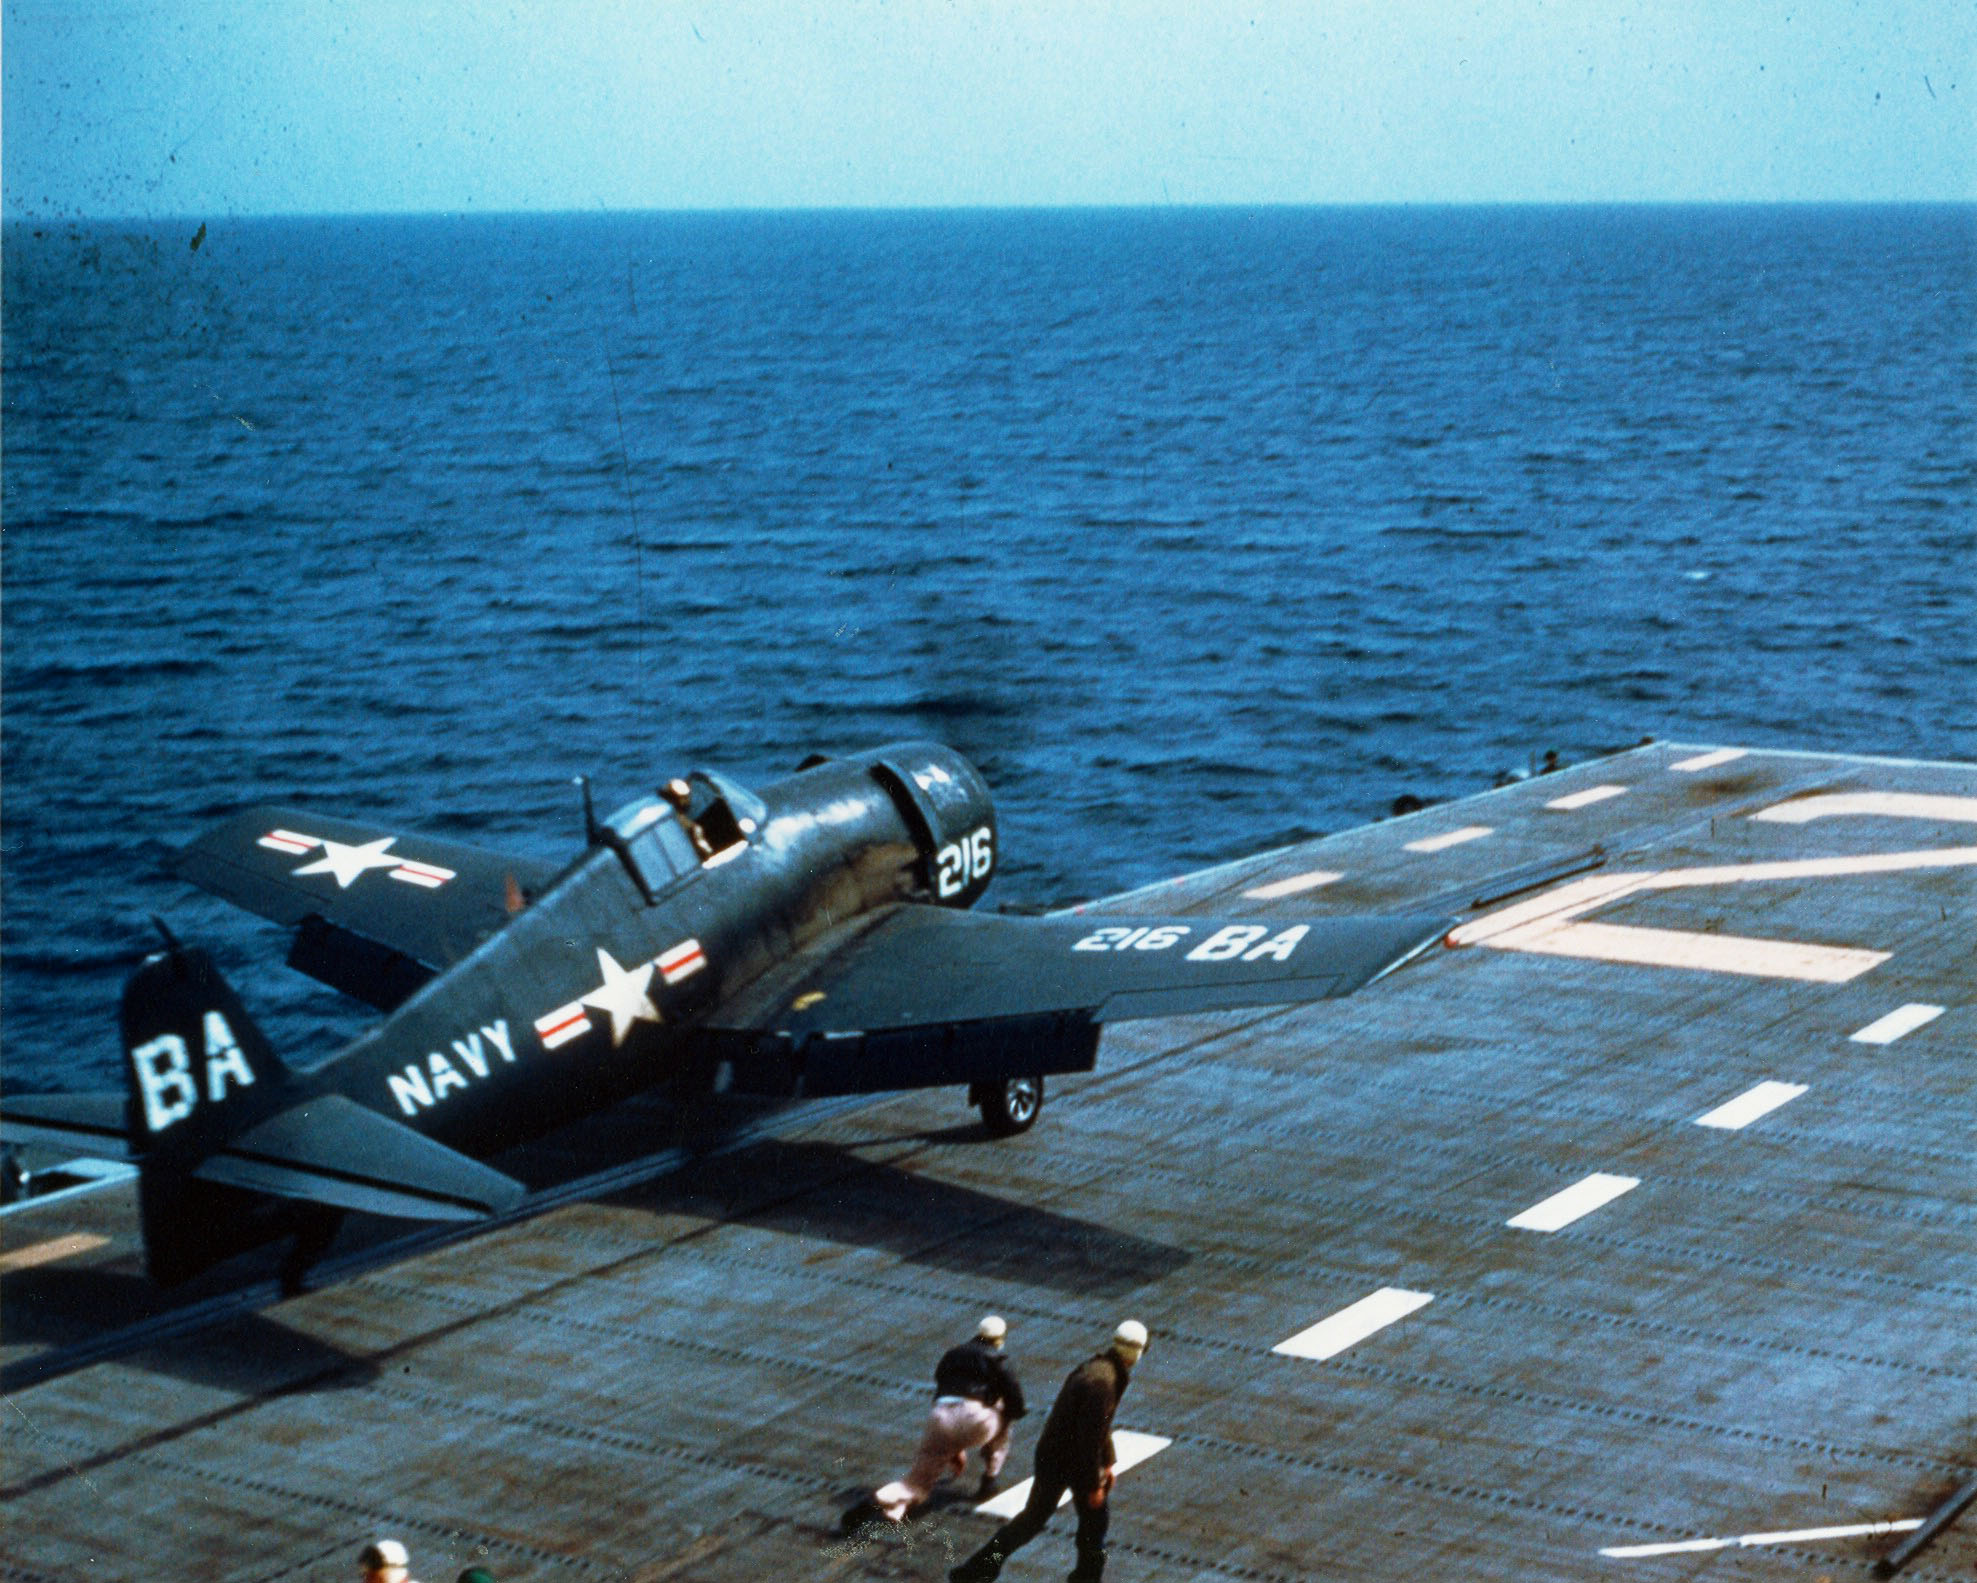 Grumman F6F 5 Hellcat WHite BA216 being launched from USS Monterey Gulf of Mexico 1953 01